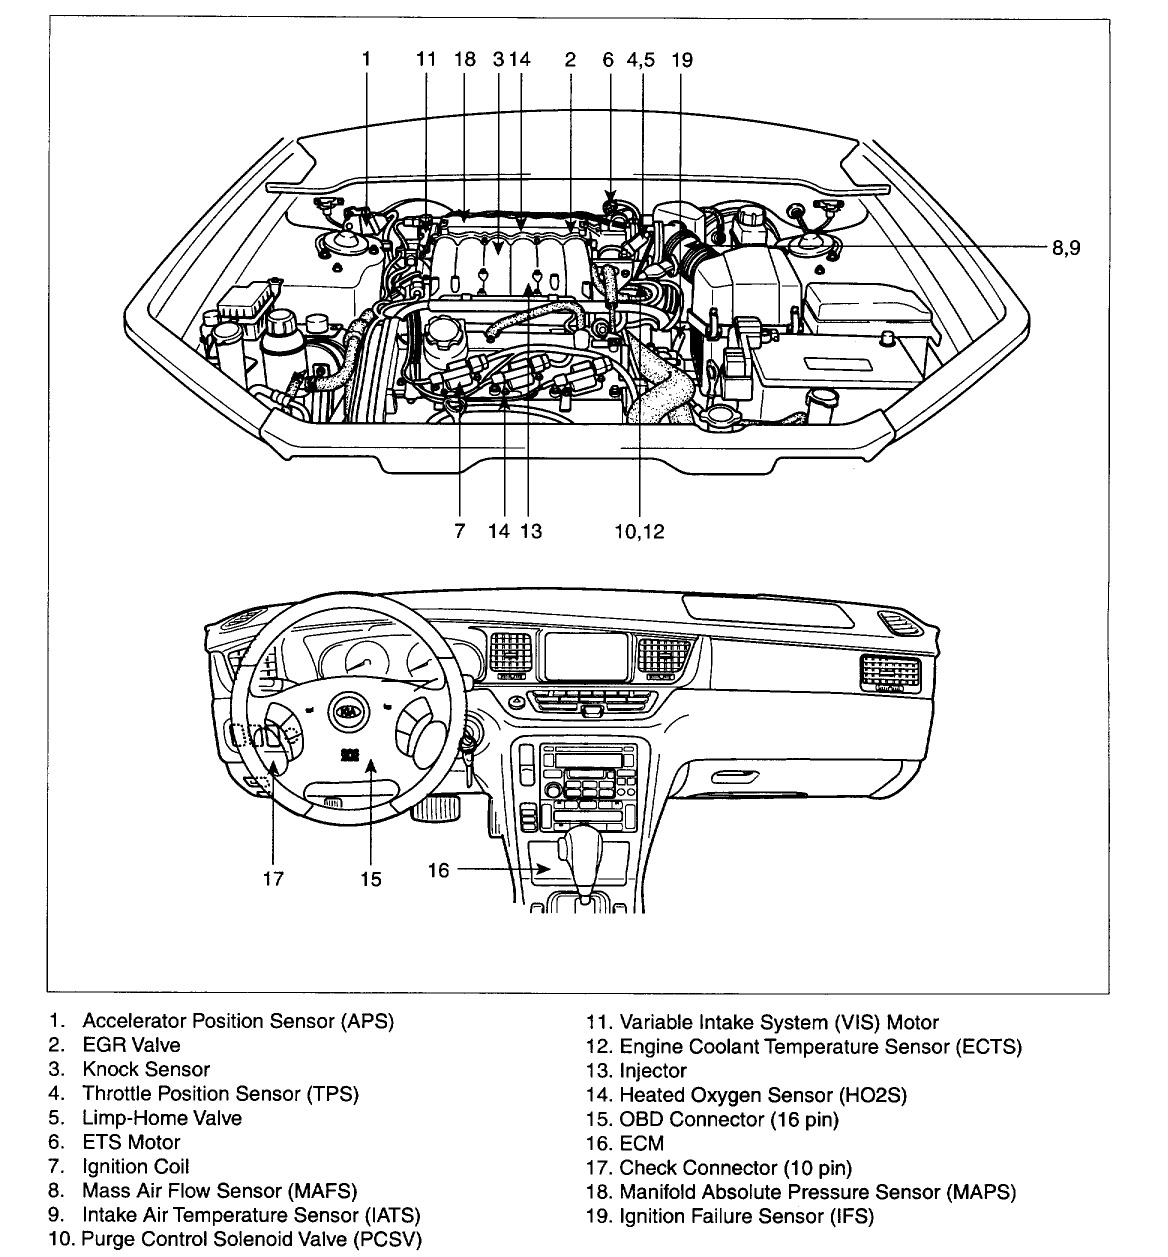 2005 Kia Sorento V6 Engine Diagram Wiring Library Fuse Location Sedona Panel Thumb